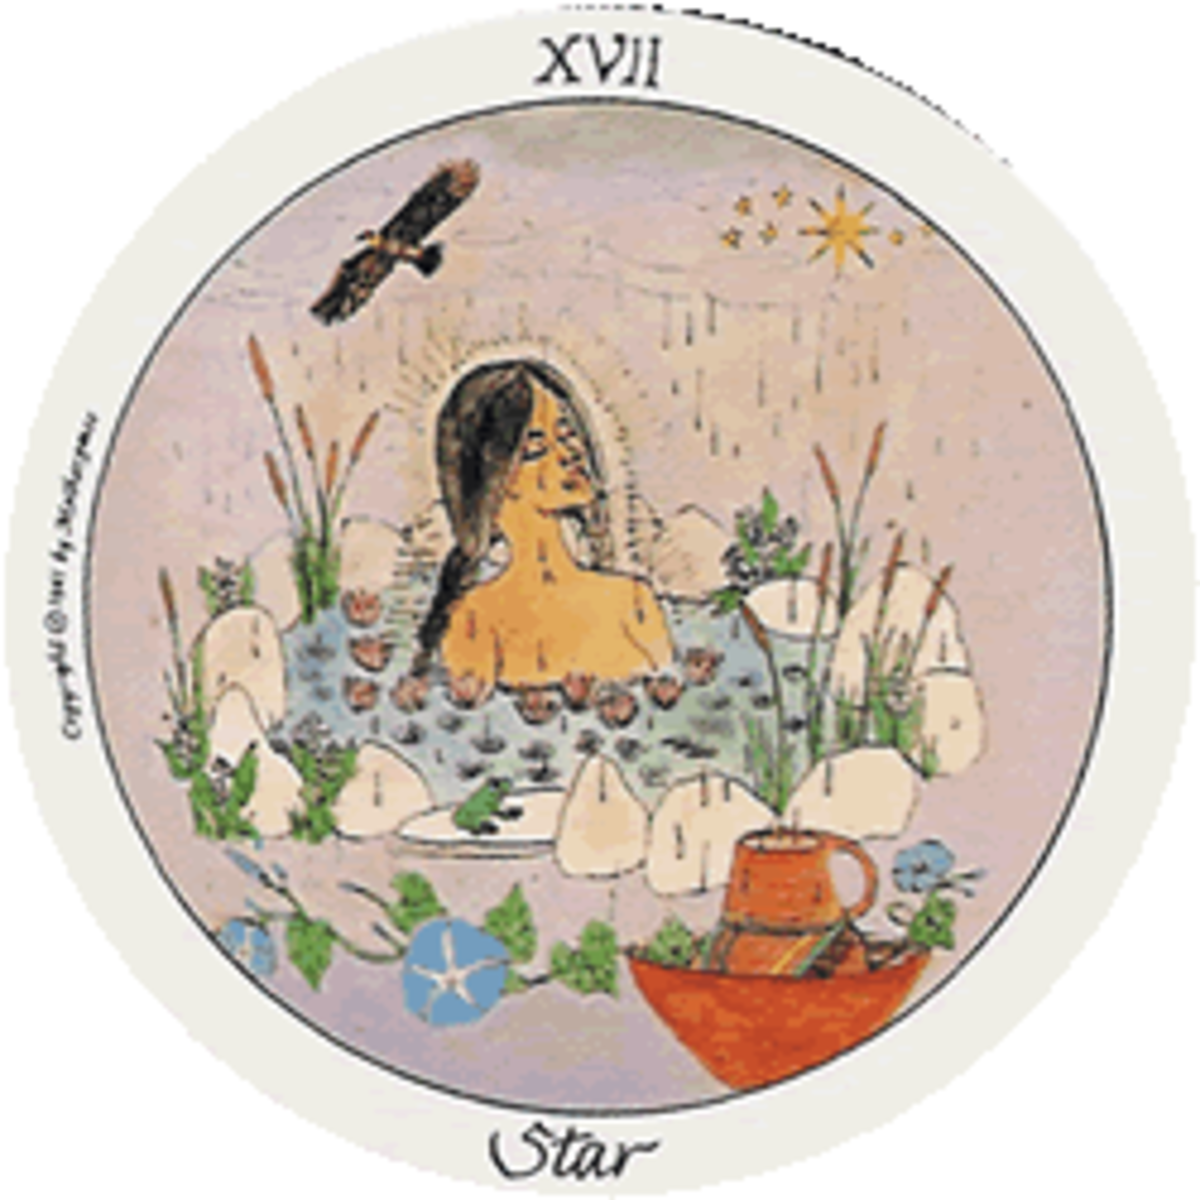 The Star is a time of relaxed healing from a trauma of some type